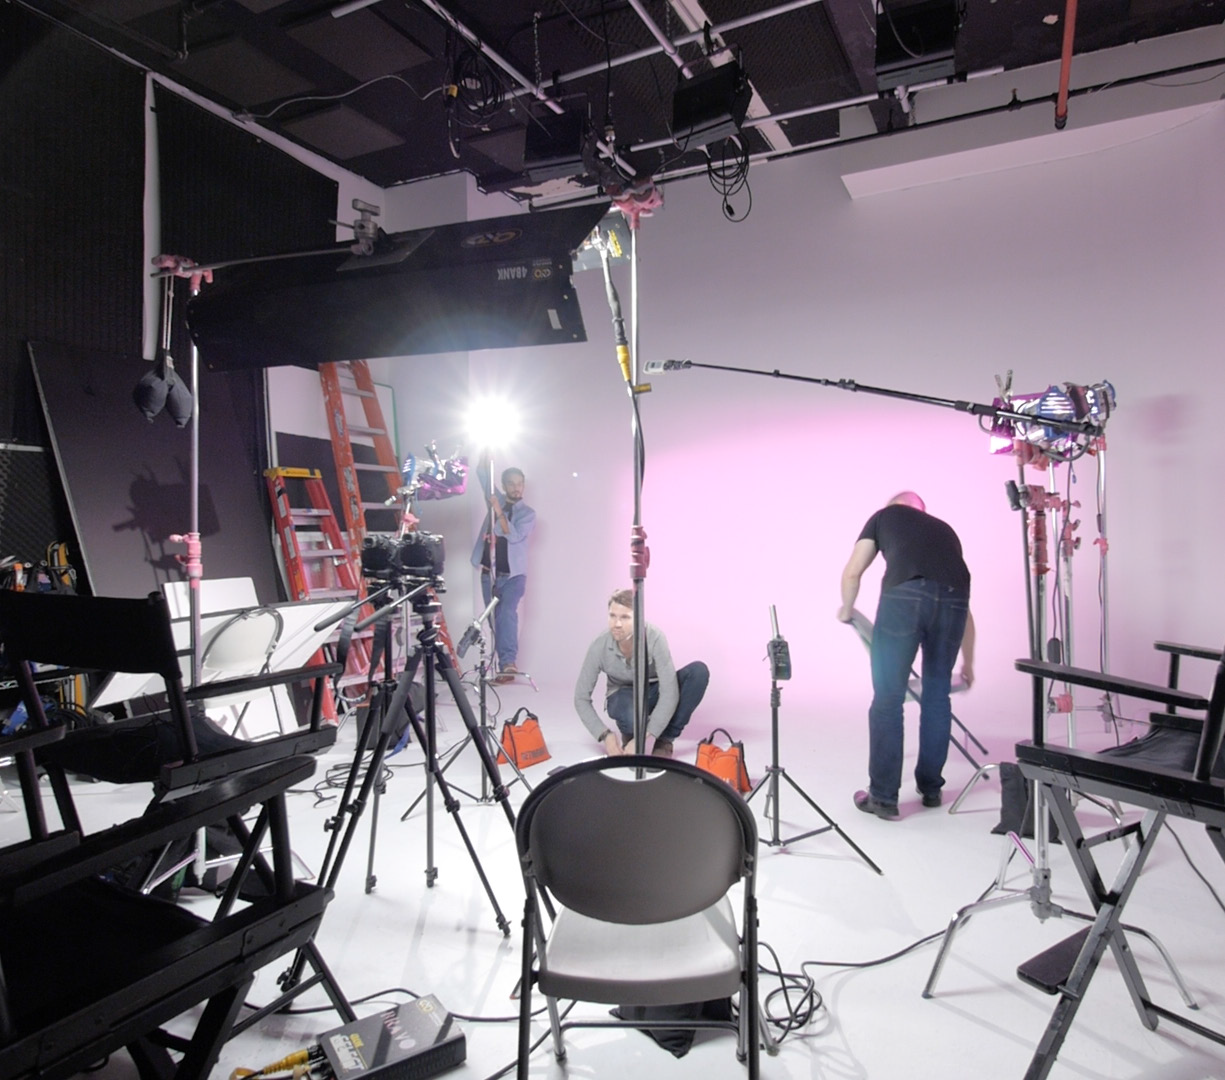 Professional Video Production Services for Long Island Businesses - Top Notch Cinema - About-us